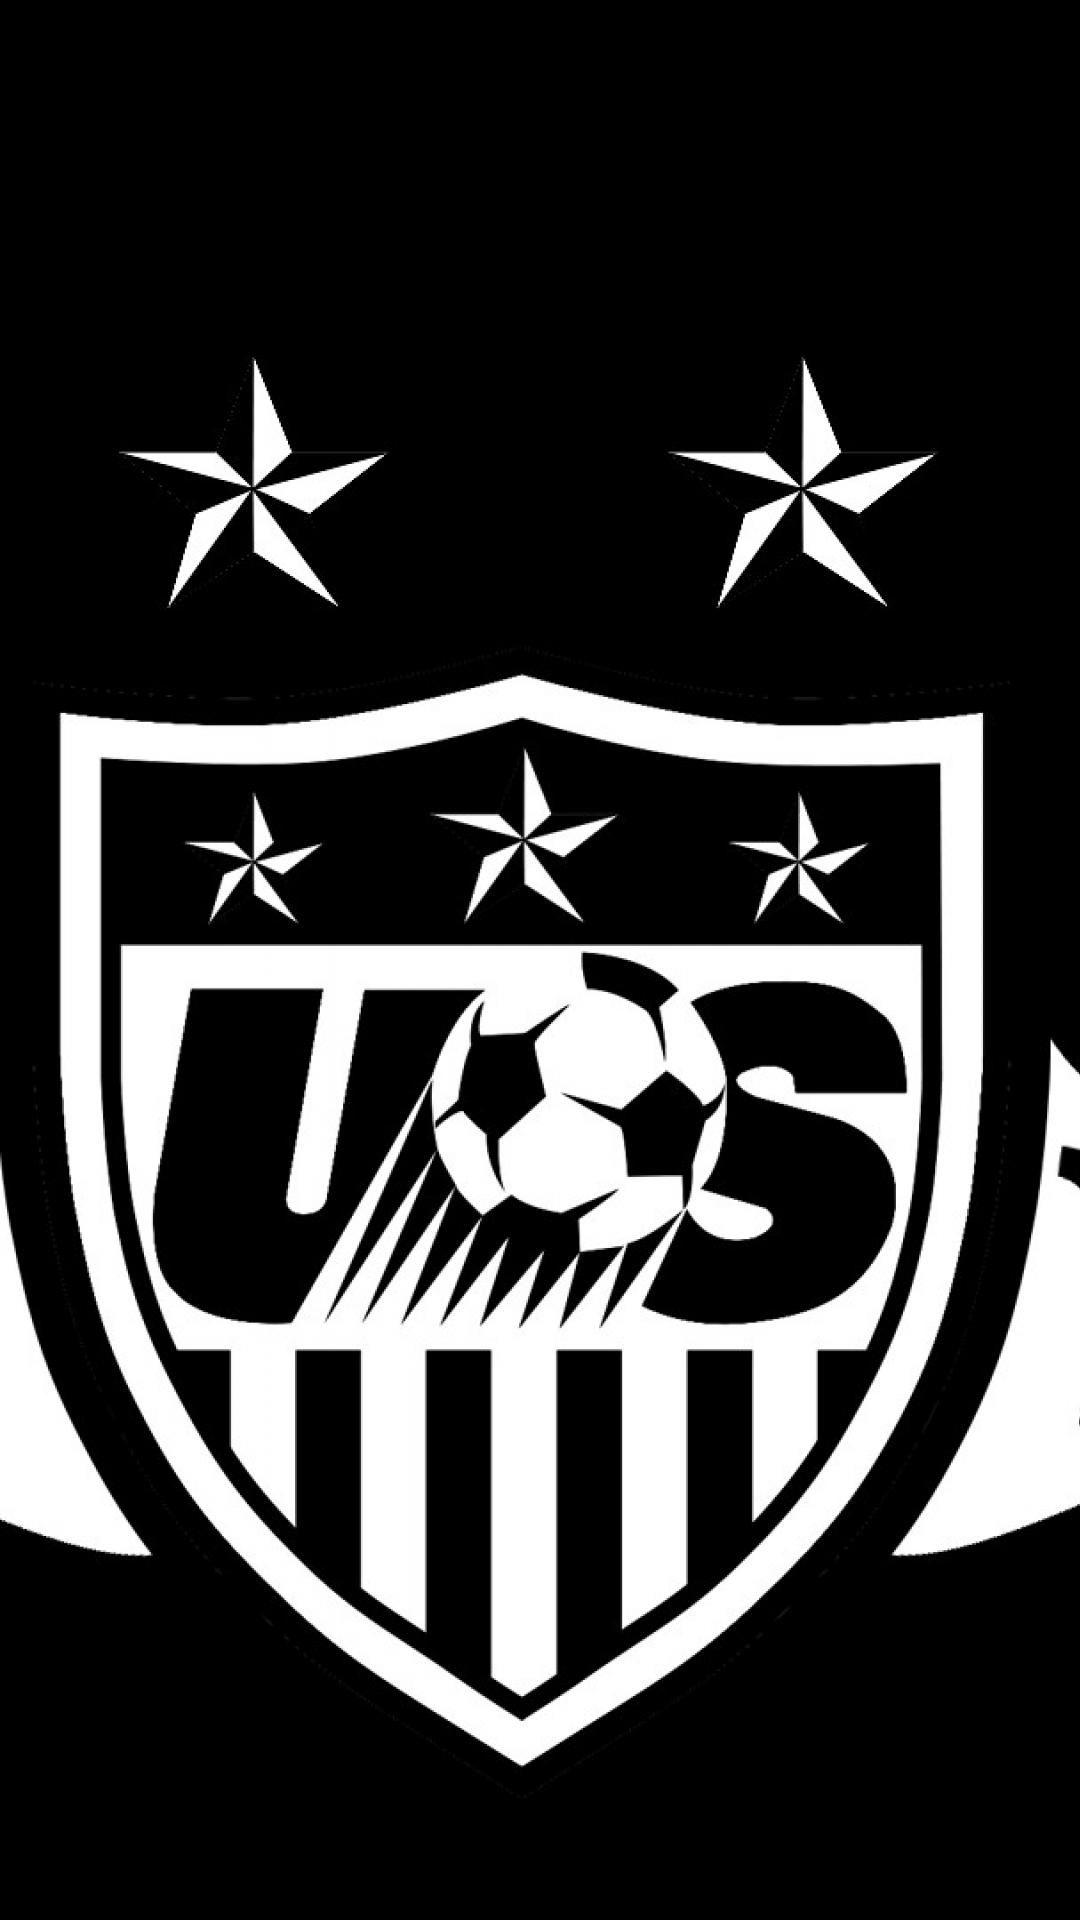 Usmnt soccer wallpaper labzada wallpaper download soccer iphone backgrounds source uswnt wallpapers wallpaper cave publicscrutiny Image collections